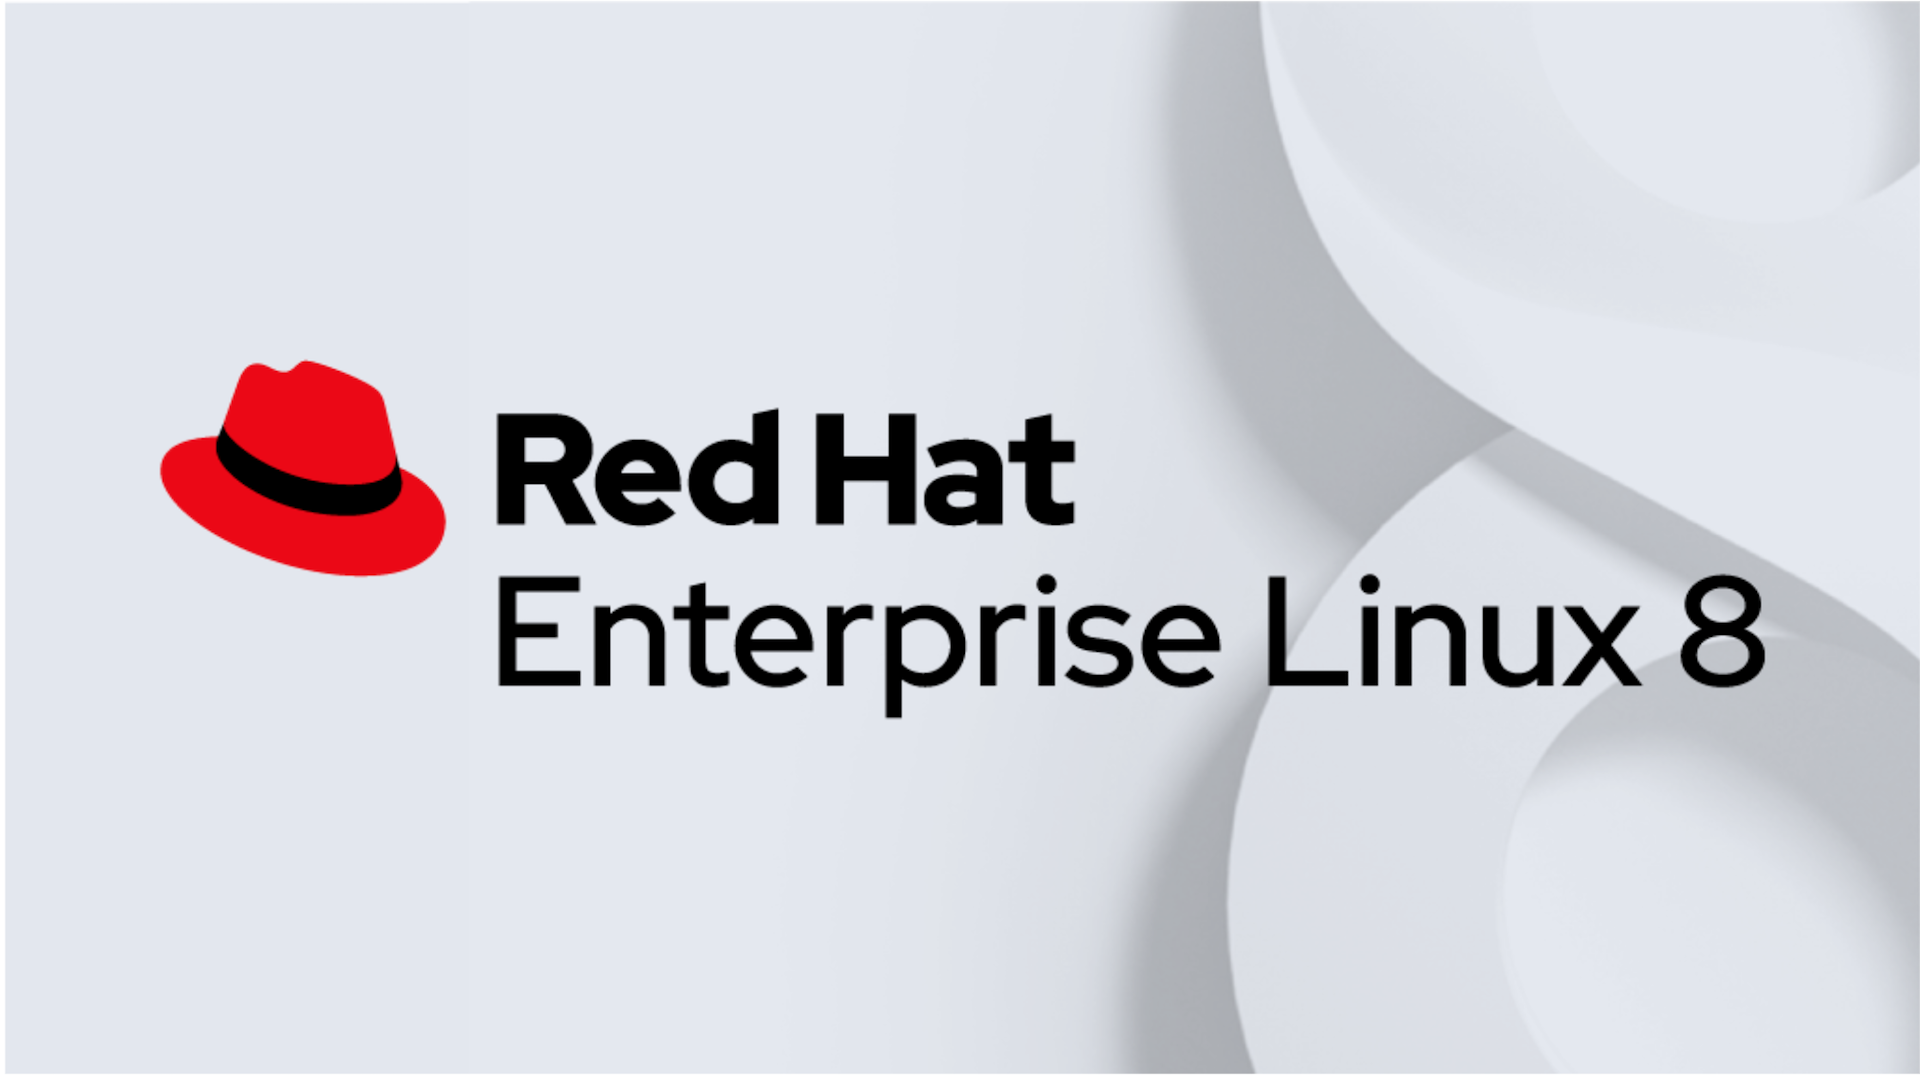 Red Hat Enterprise Linux 8.1 Beta brings new development tools